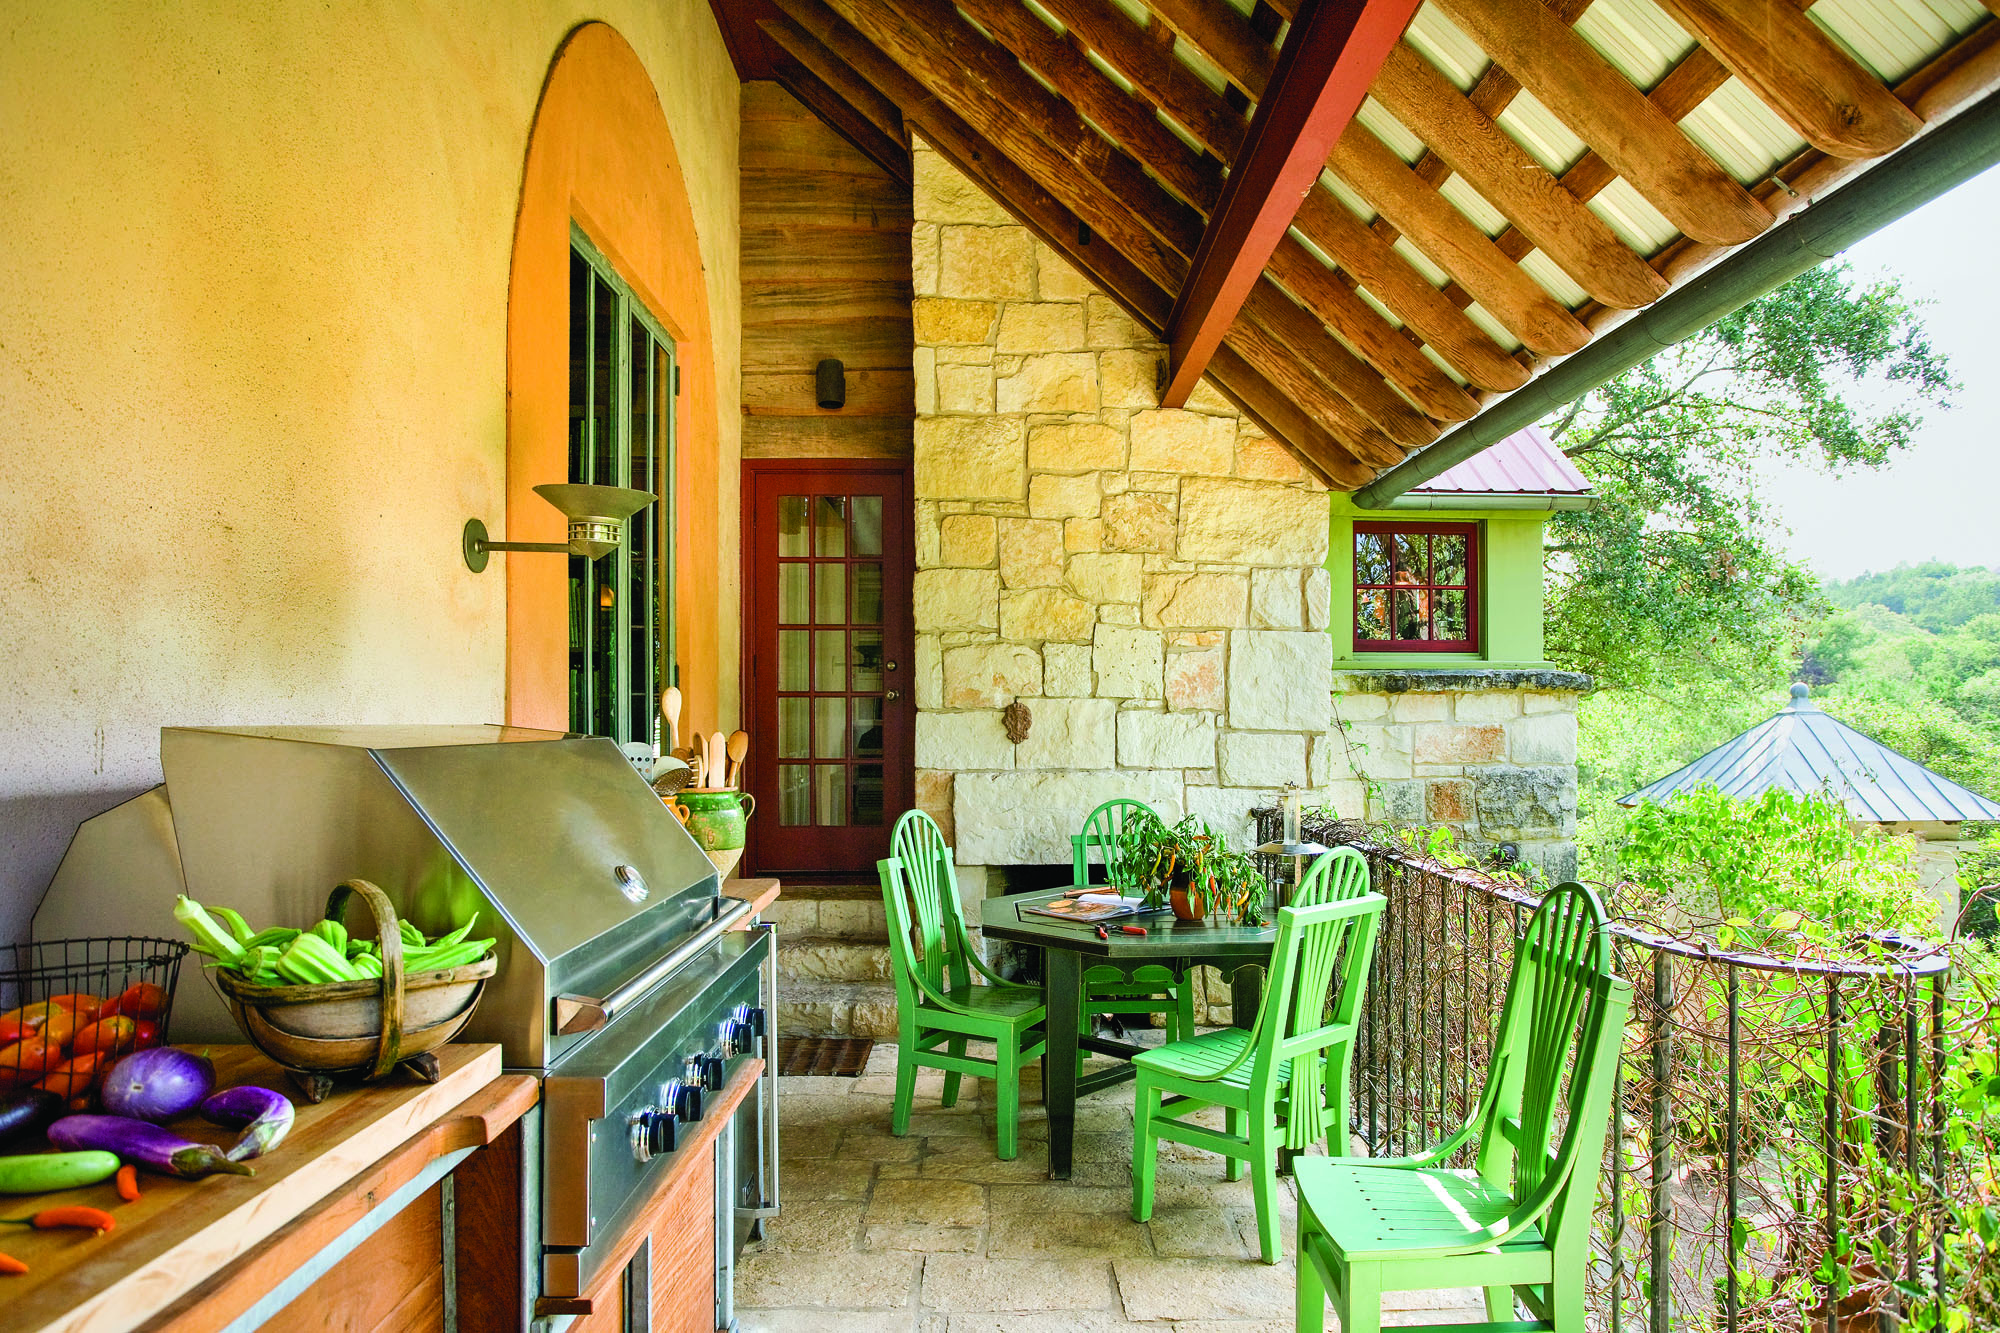 Warm climates lend themselves more readily to the concept of the outdoor kitchen. However, ventilation is still key when planning an alfresco space.